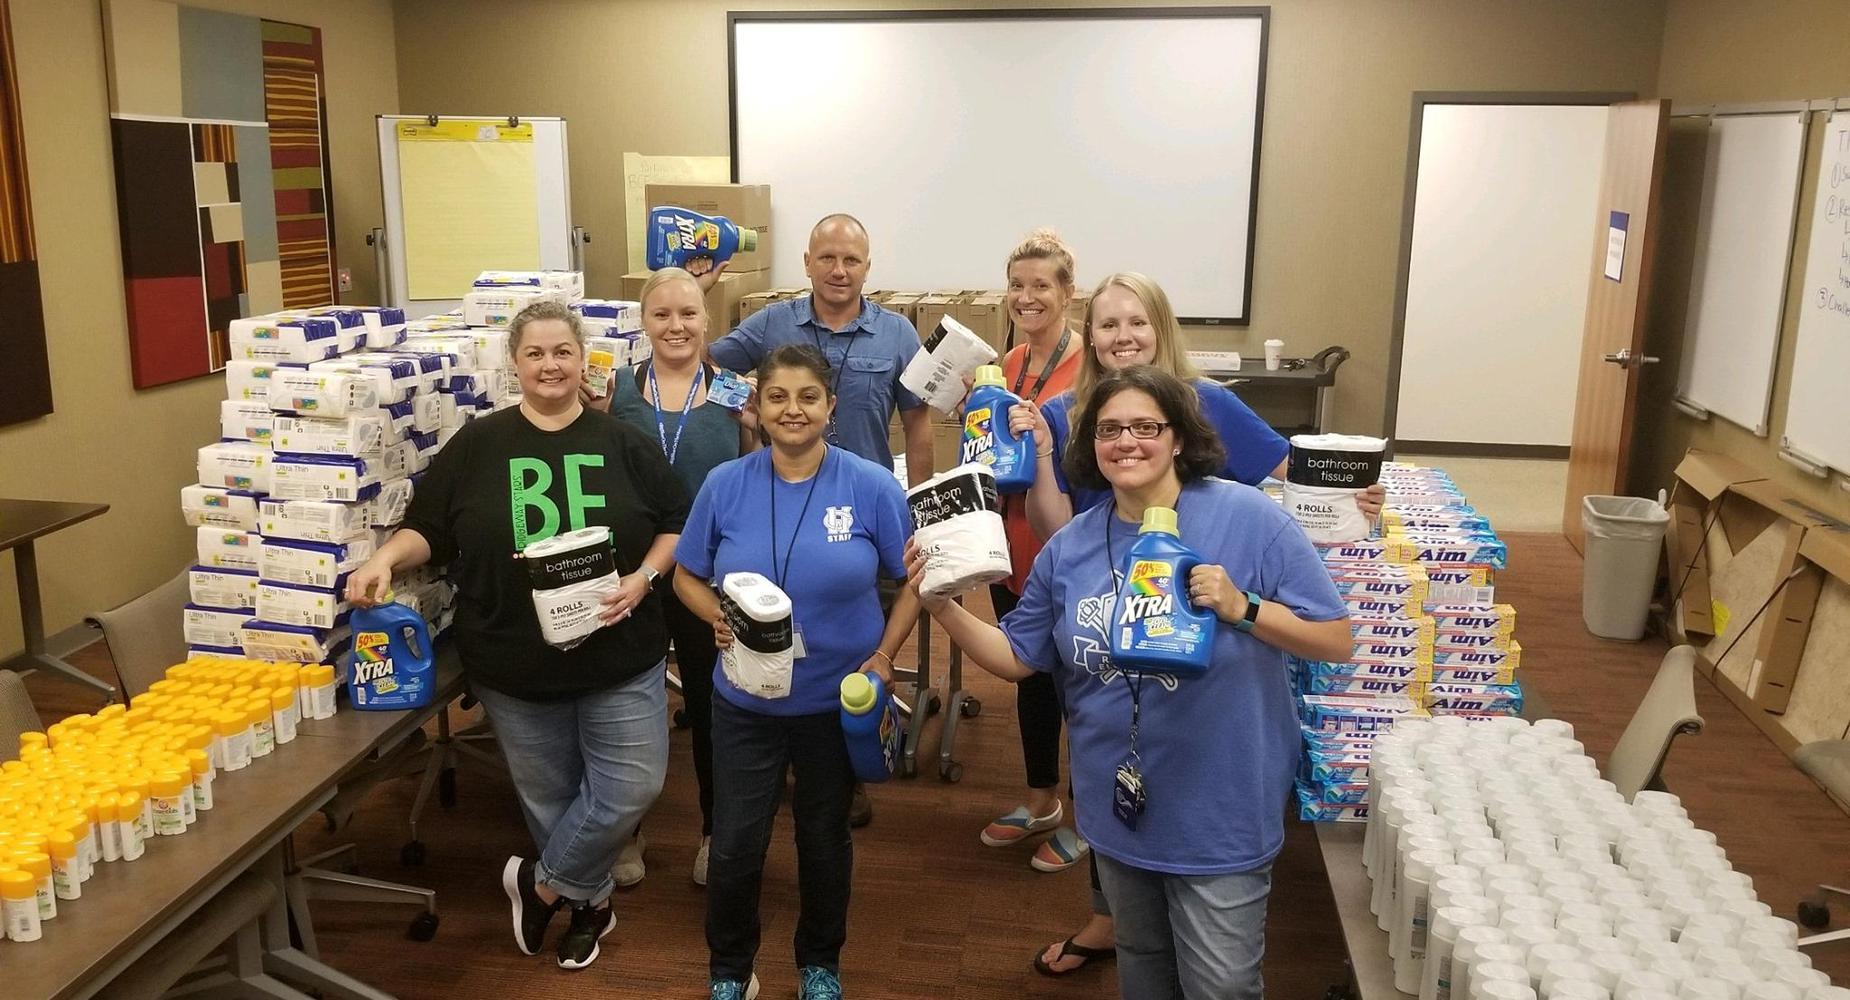 Success liaisons gather and distribute personal care items for families in need